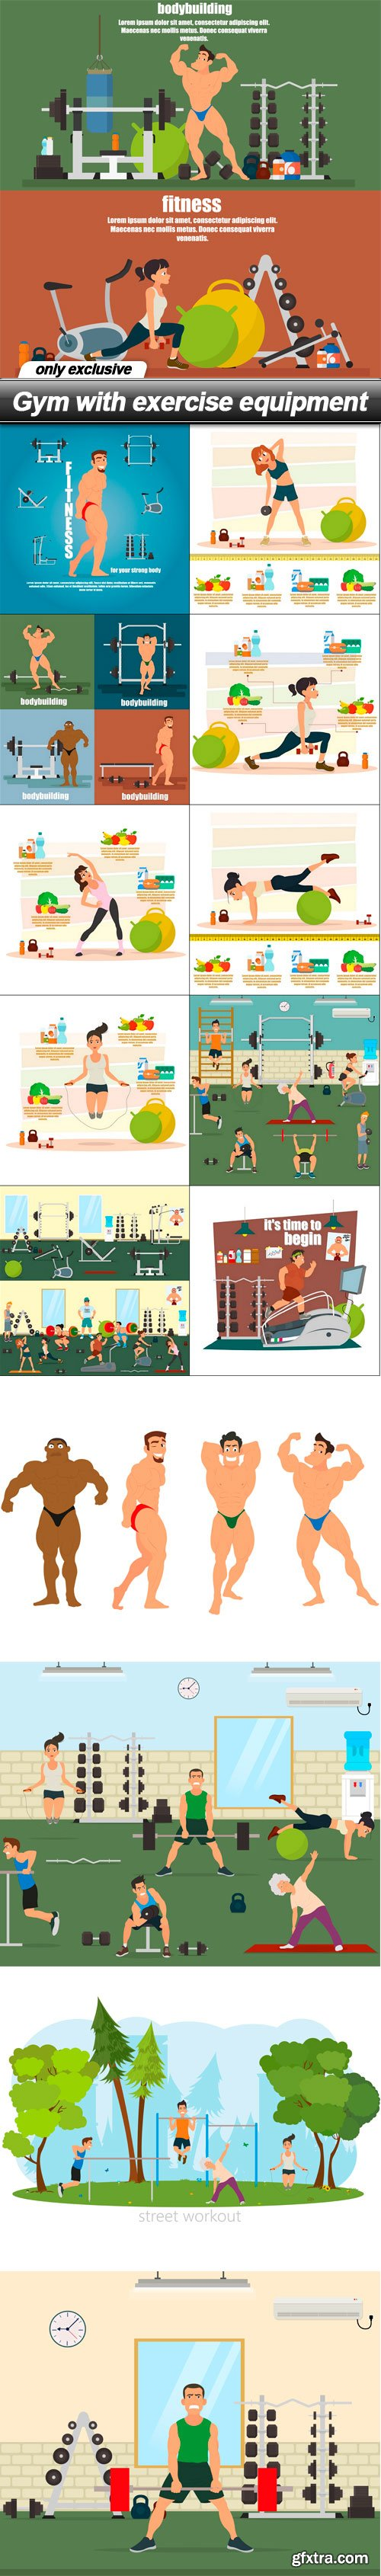 Gym with exercise equipment - 15 EPS